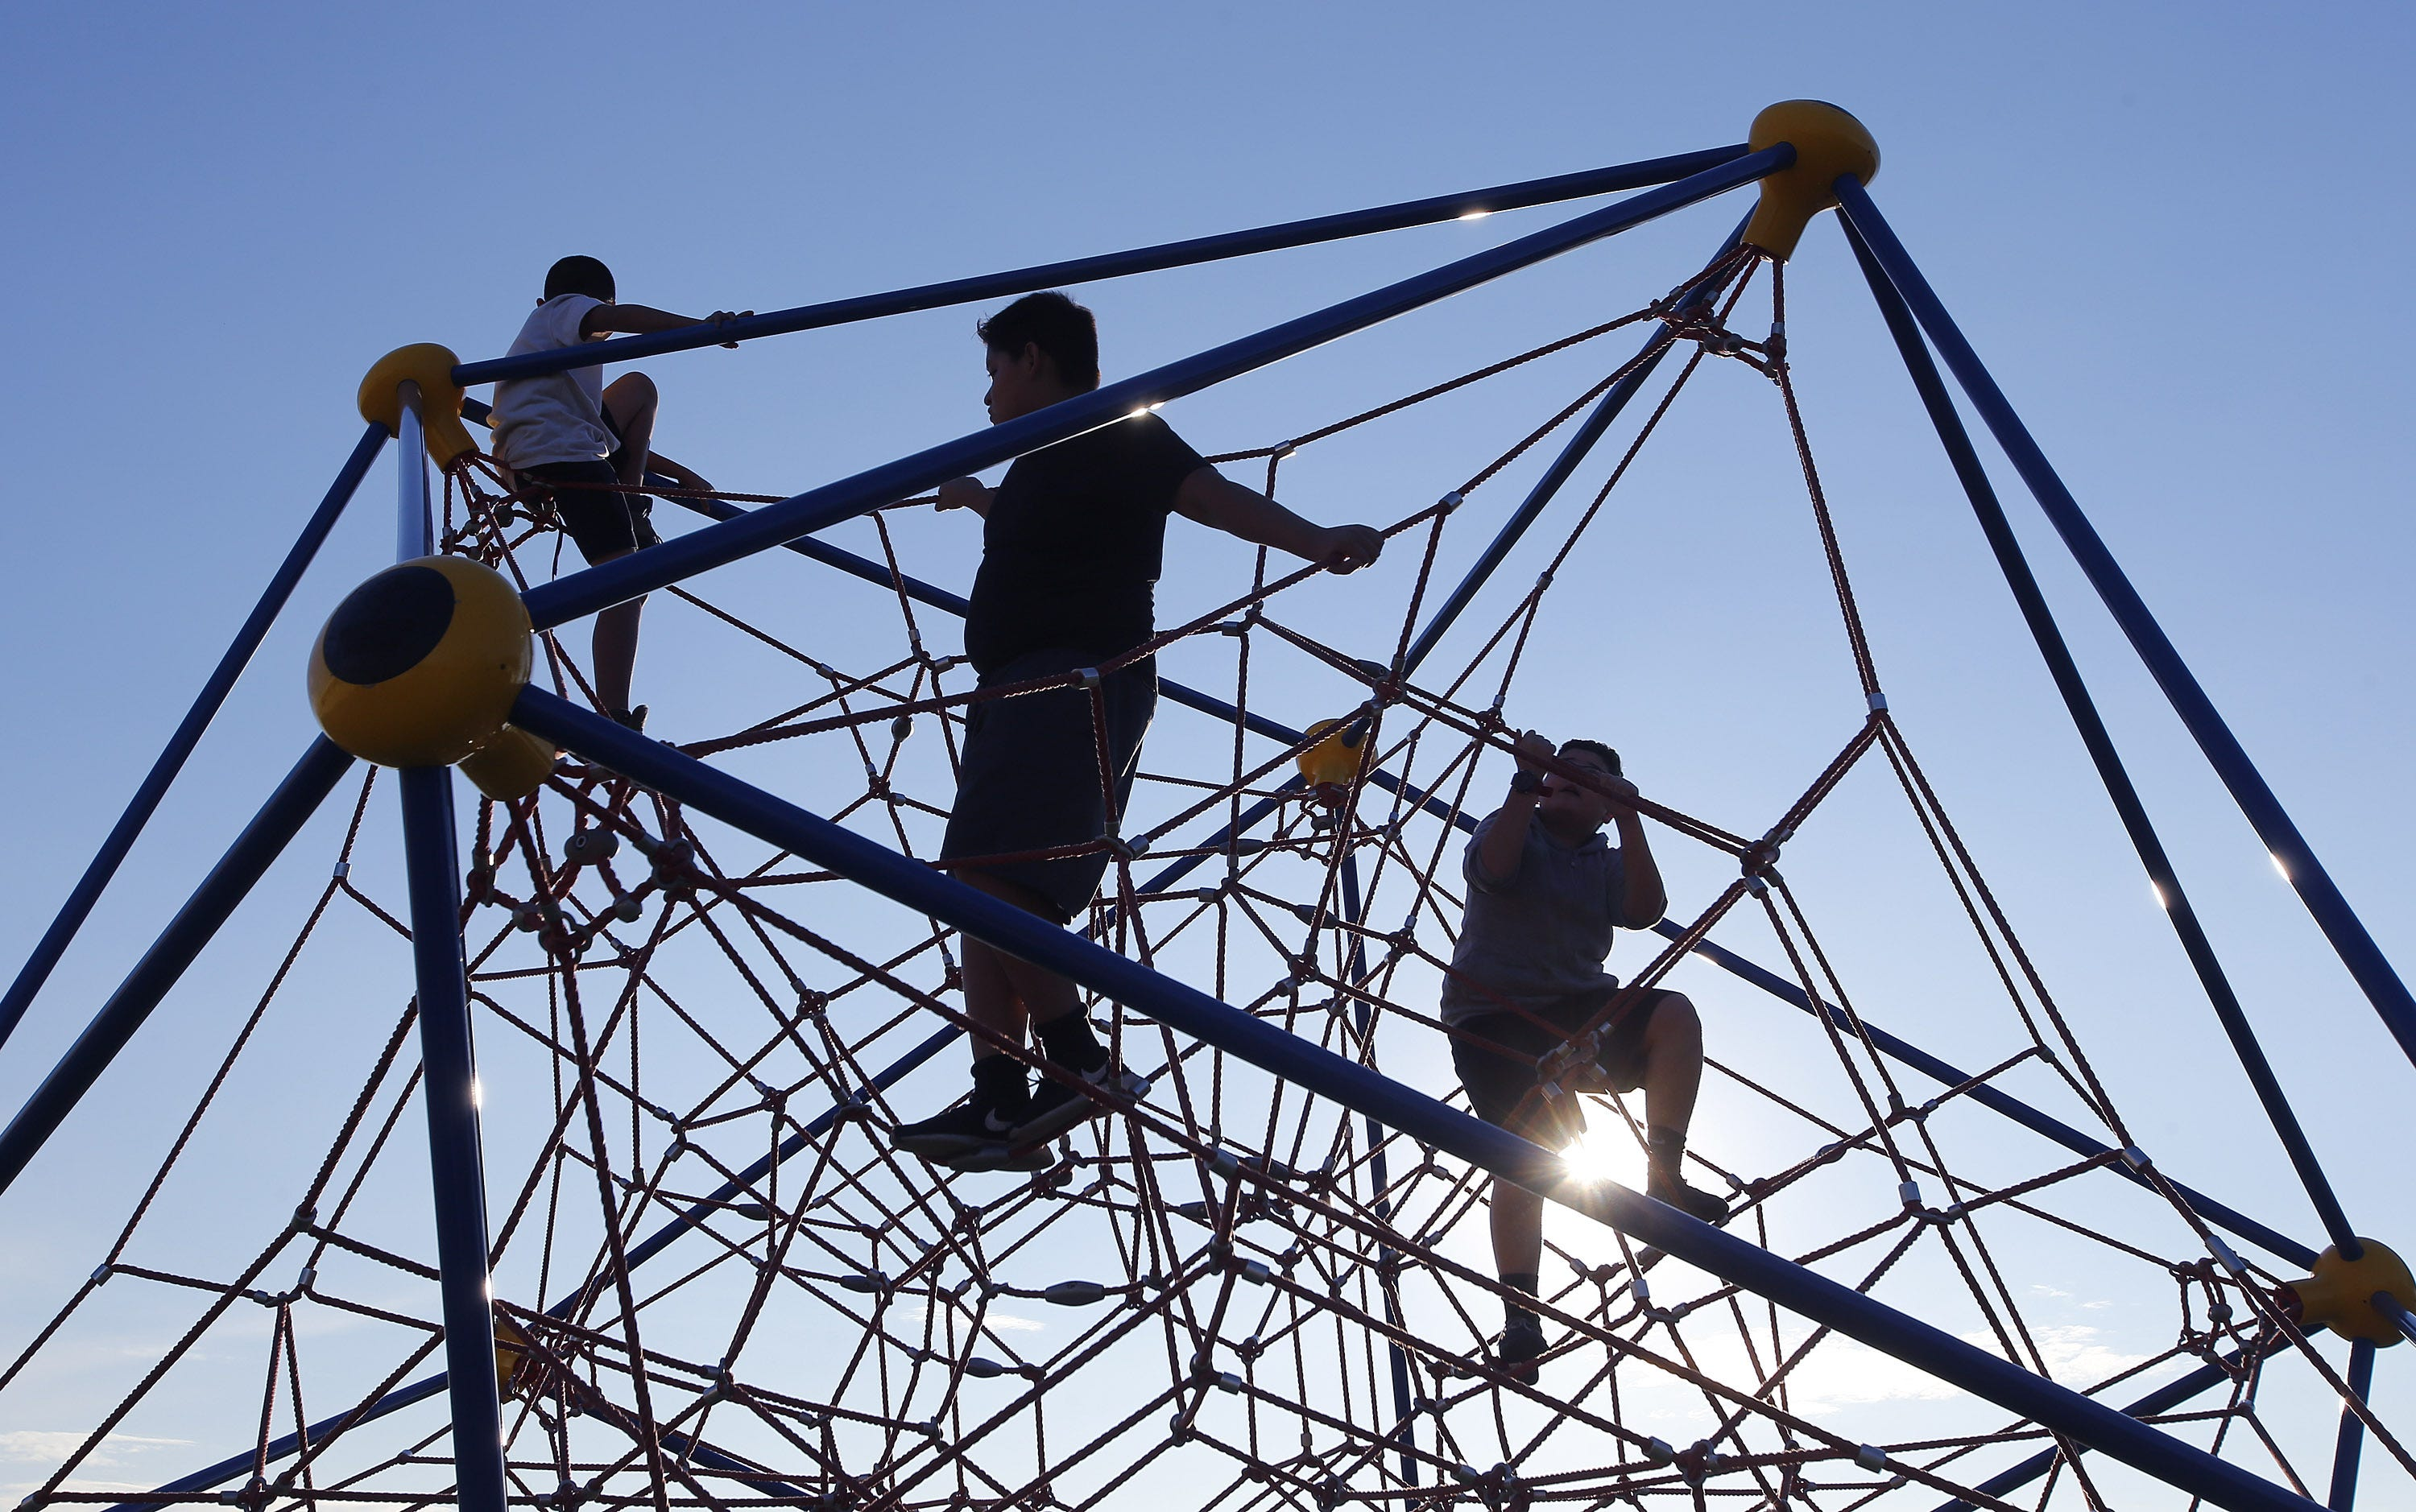 High poverty, lack of health-care access spur Arizona's low ranking in child well-being